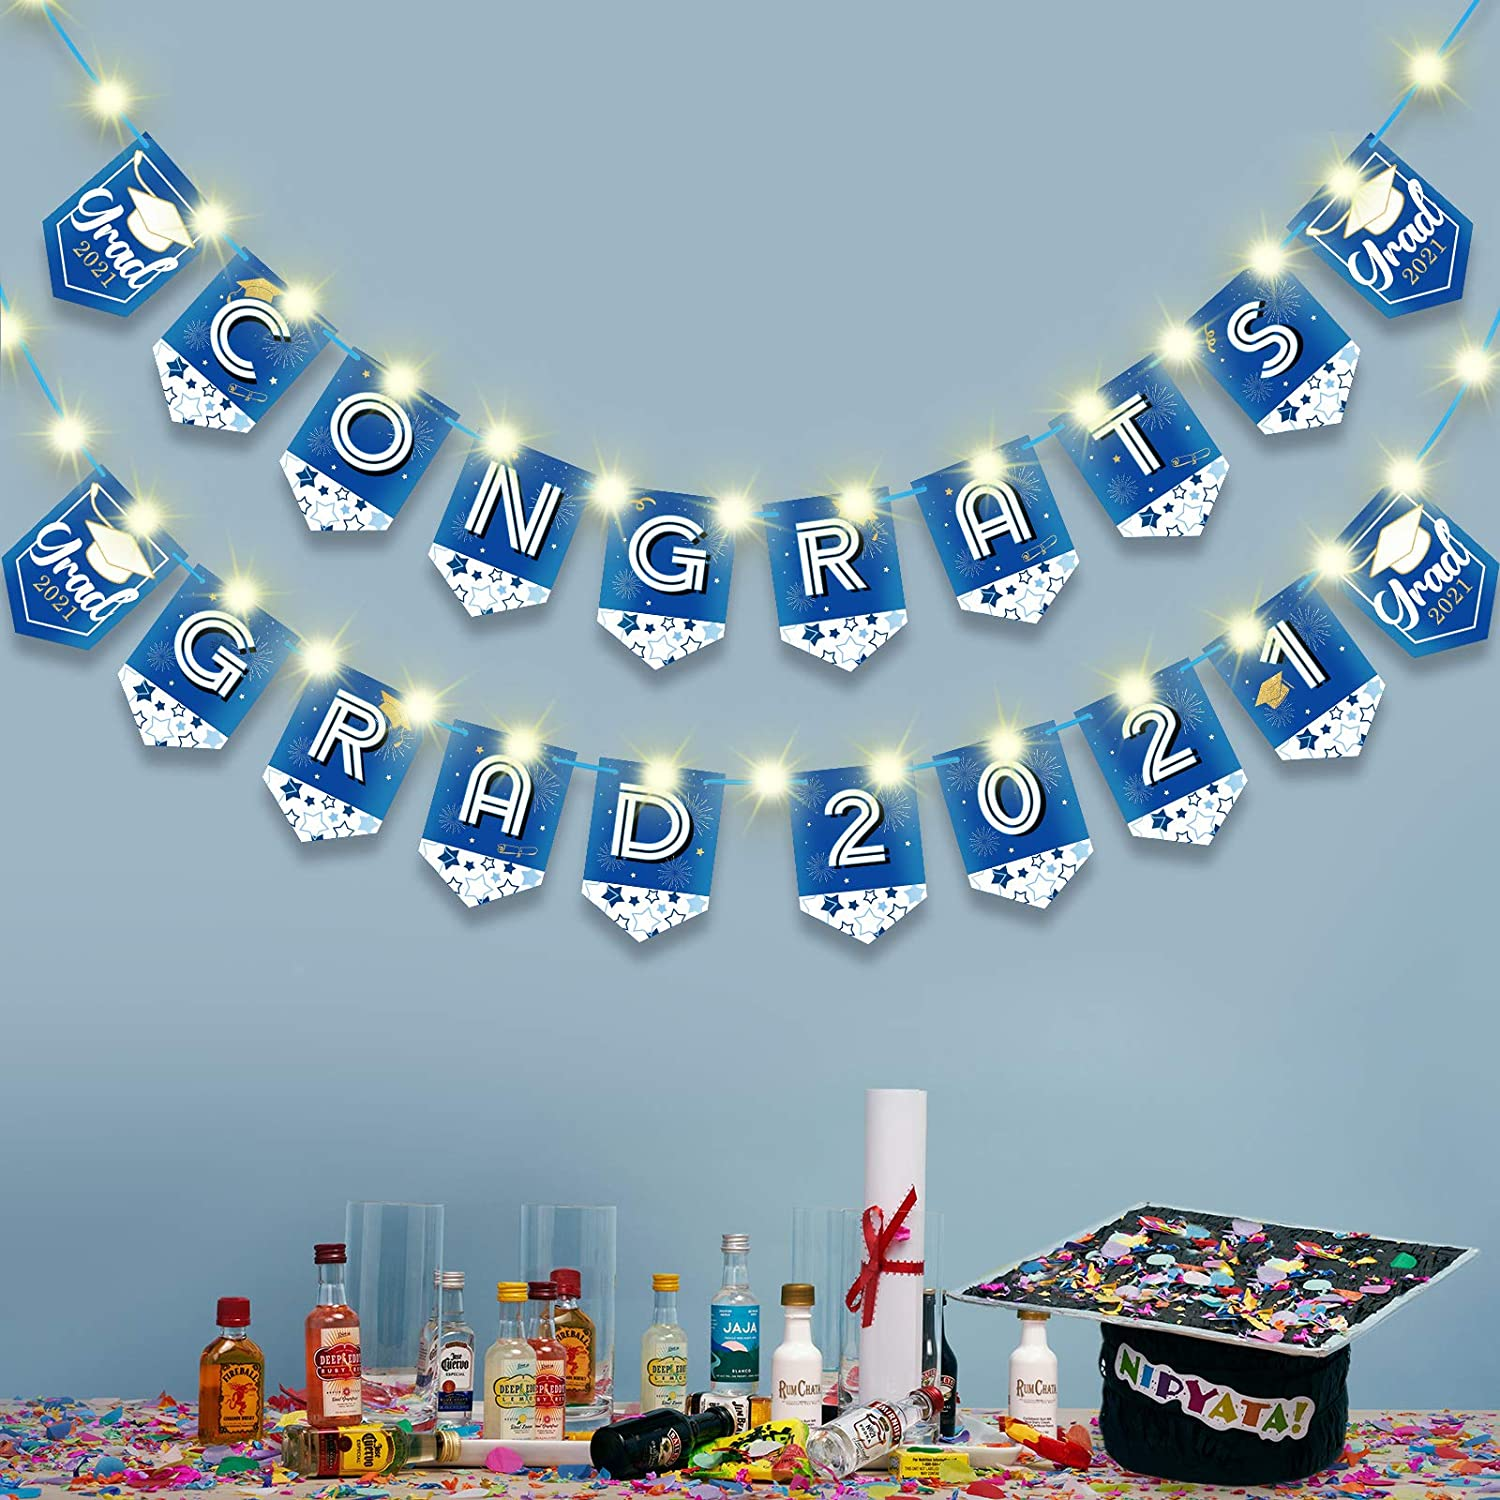 Mudder Congrats Grad Banner Decoration Graduation Party Bunting Banner with 2 Strings Lights Congrats Grad 2021 Hanging Party Banners for Graduation Party Supplies Grad Party Decor Photo Props (Blue)